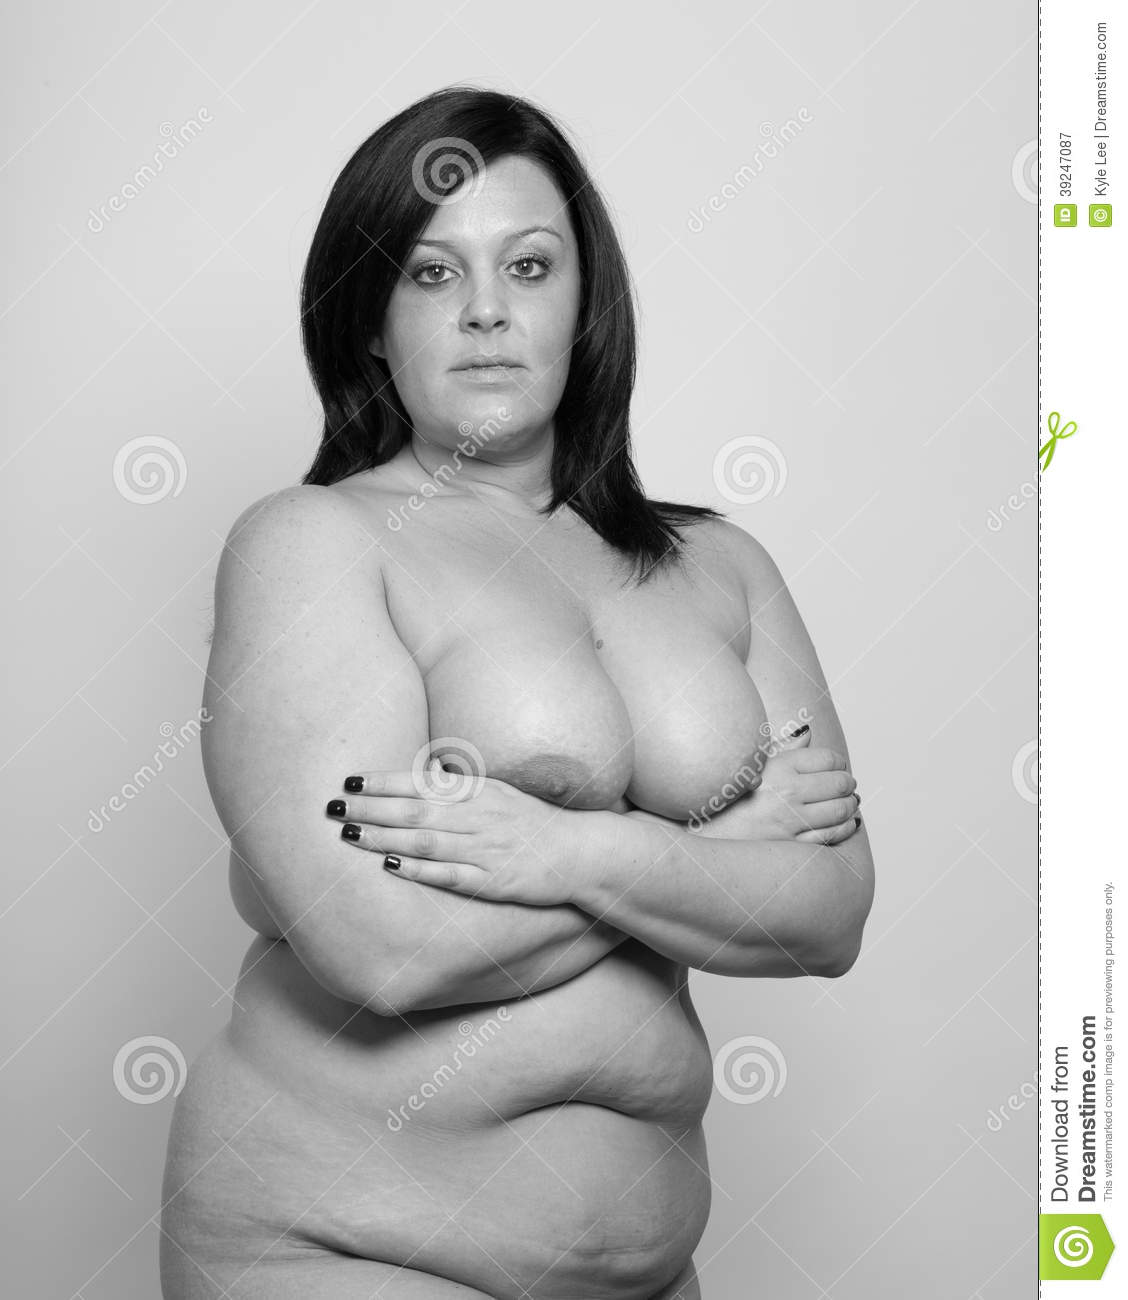 Women nude plus size homemade